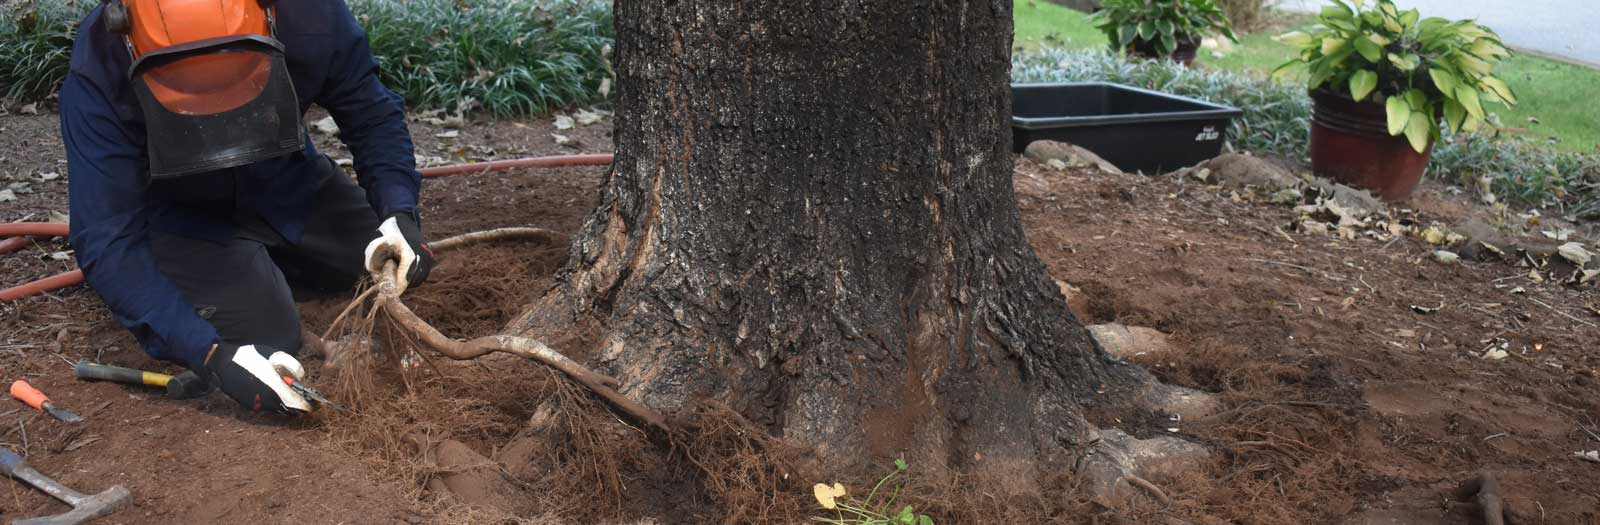 root collar excavation being performed by tree service arborist